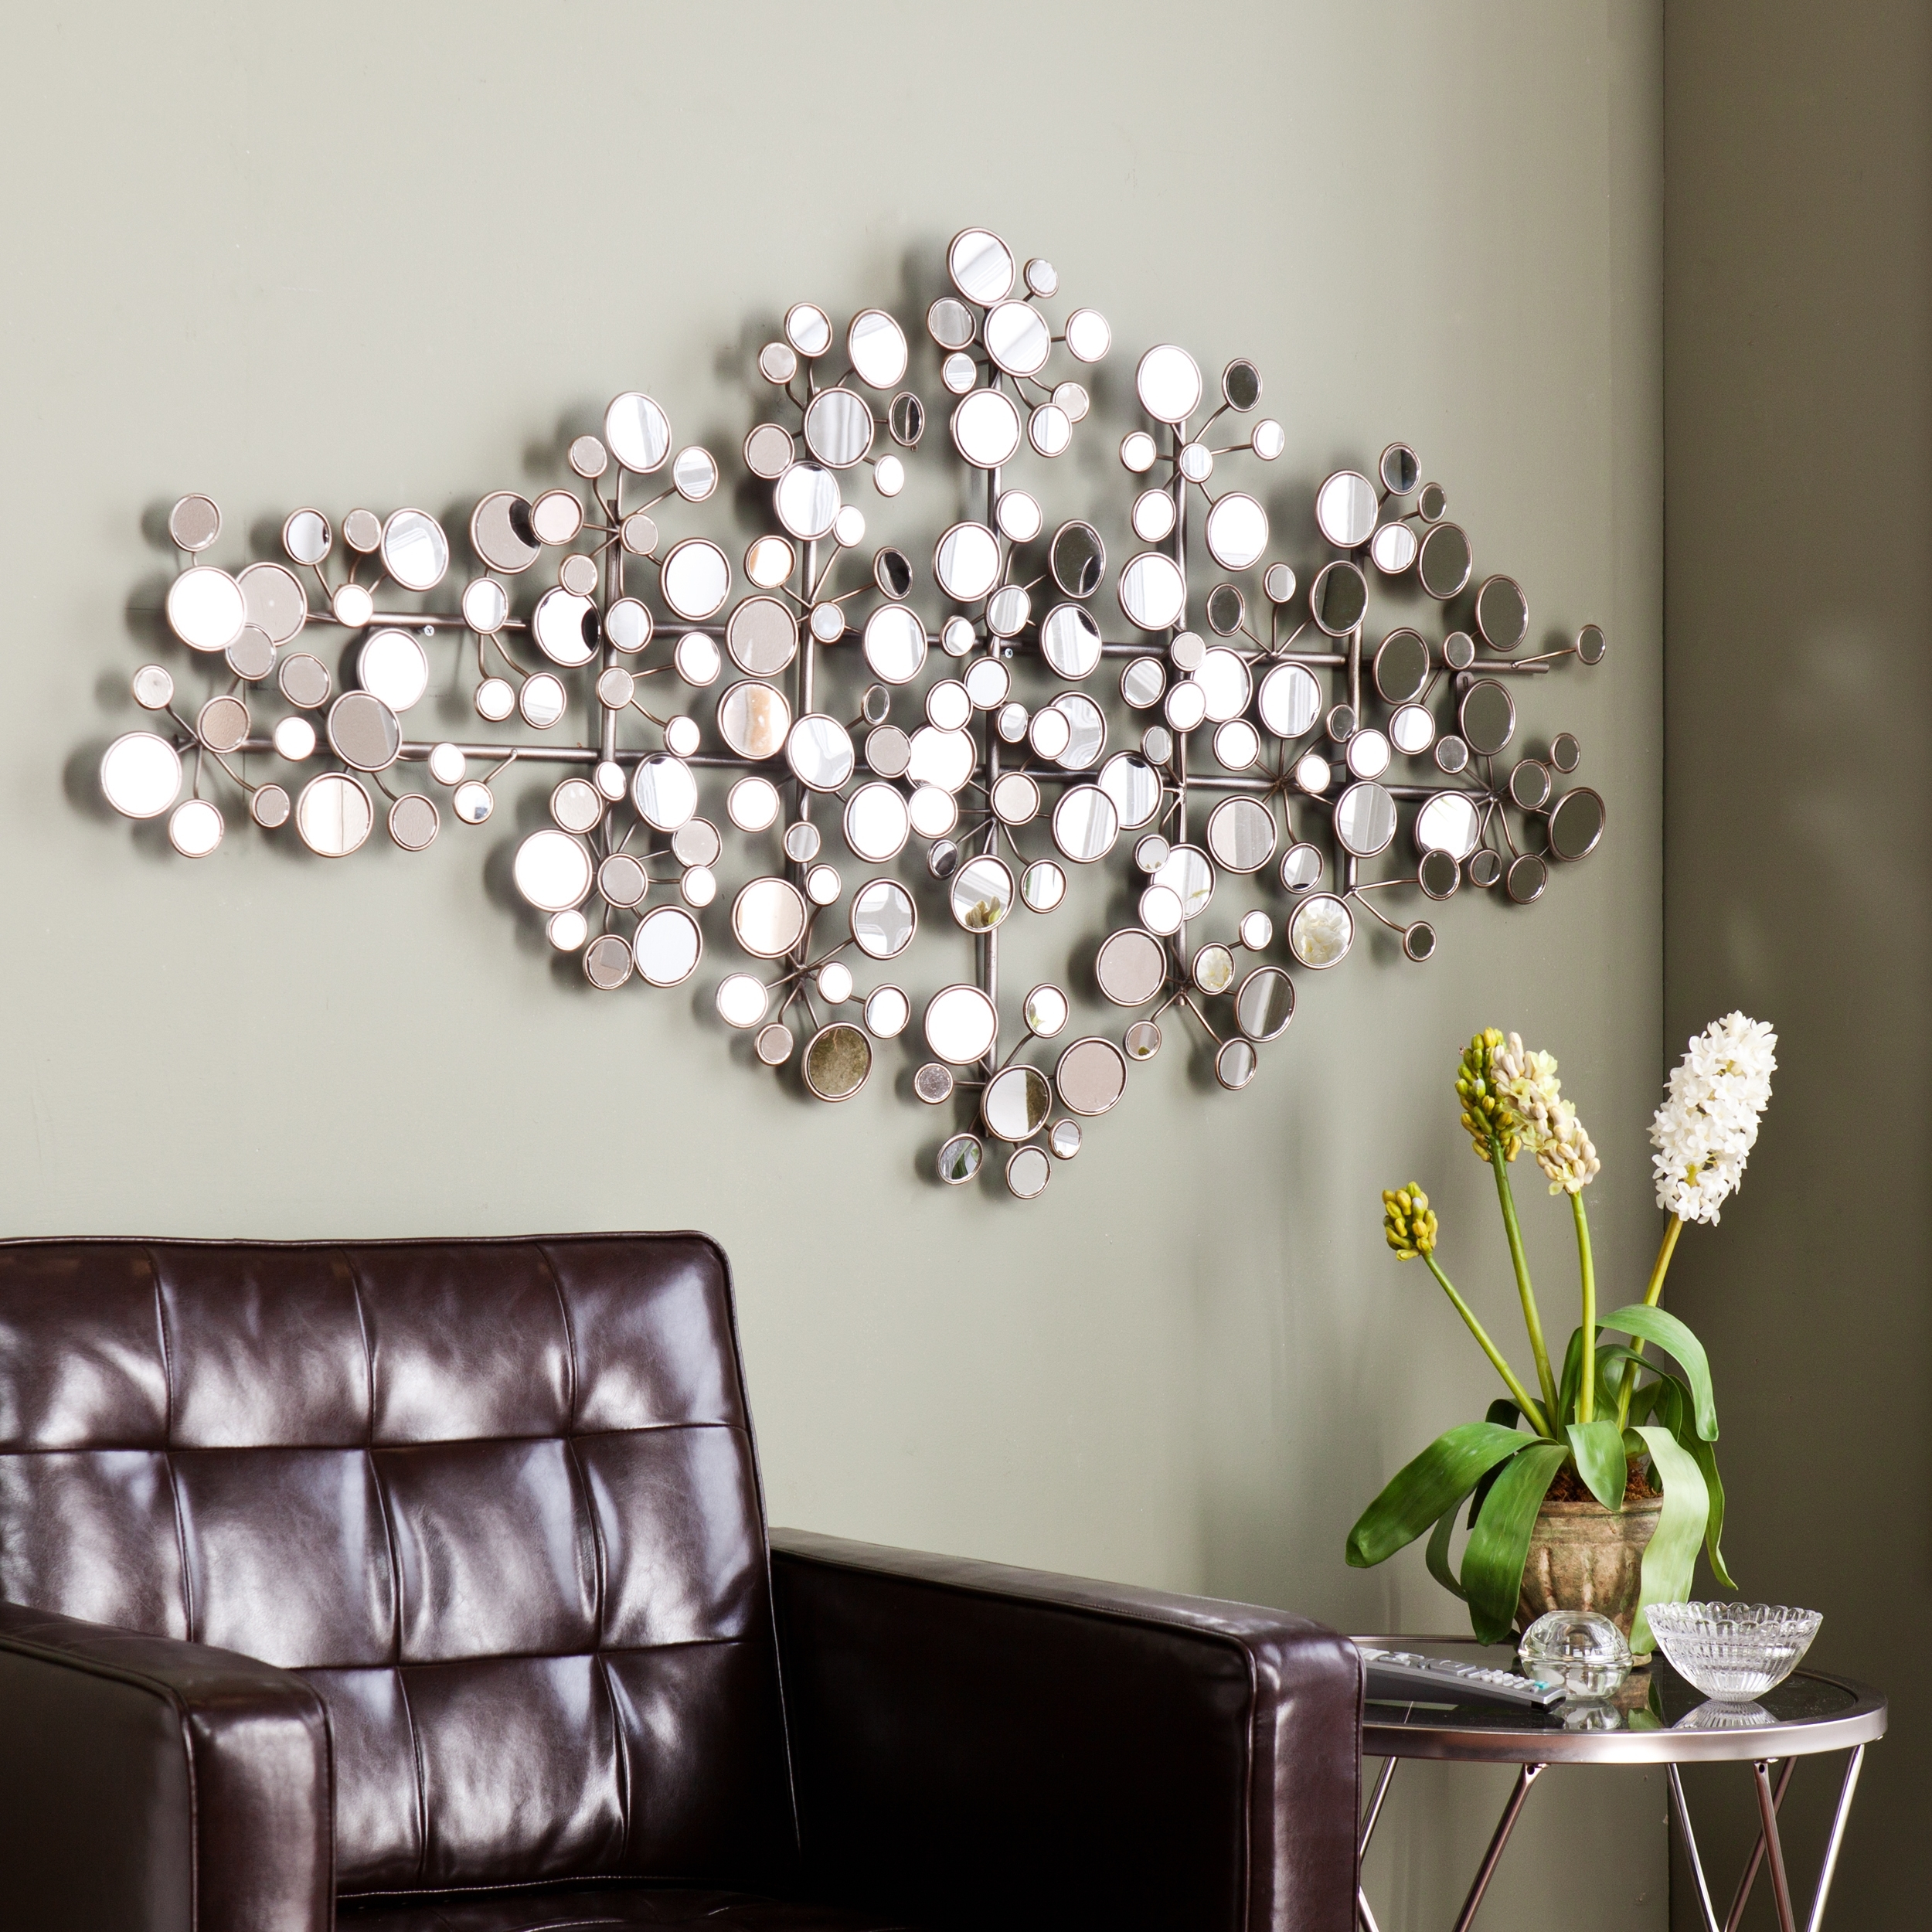 Recent This Upton Home Olivia Mirrored Metal Wall Sculpture Features A Within Modern Mirrored Wall Art (View 13 of 15)